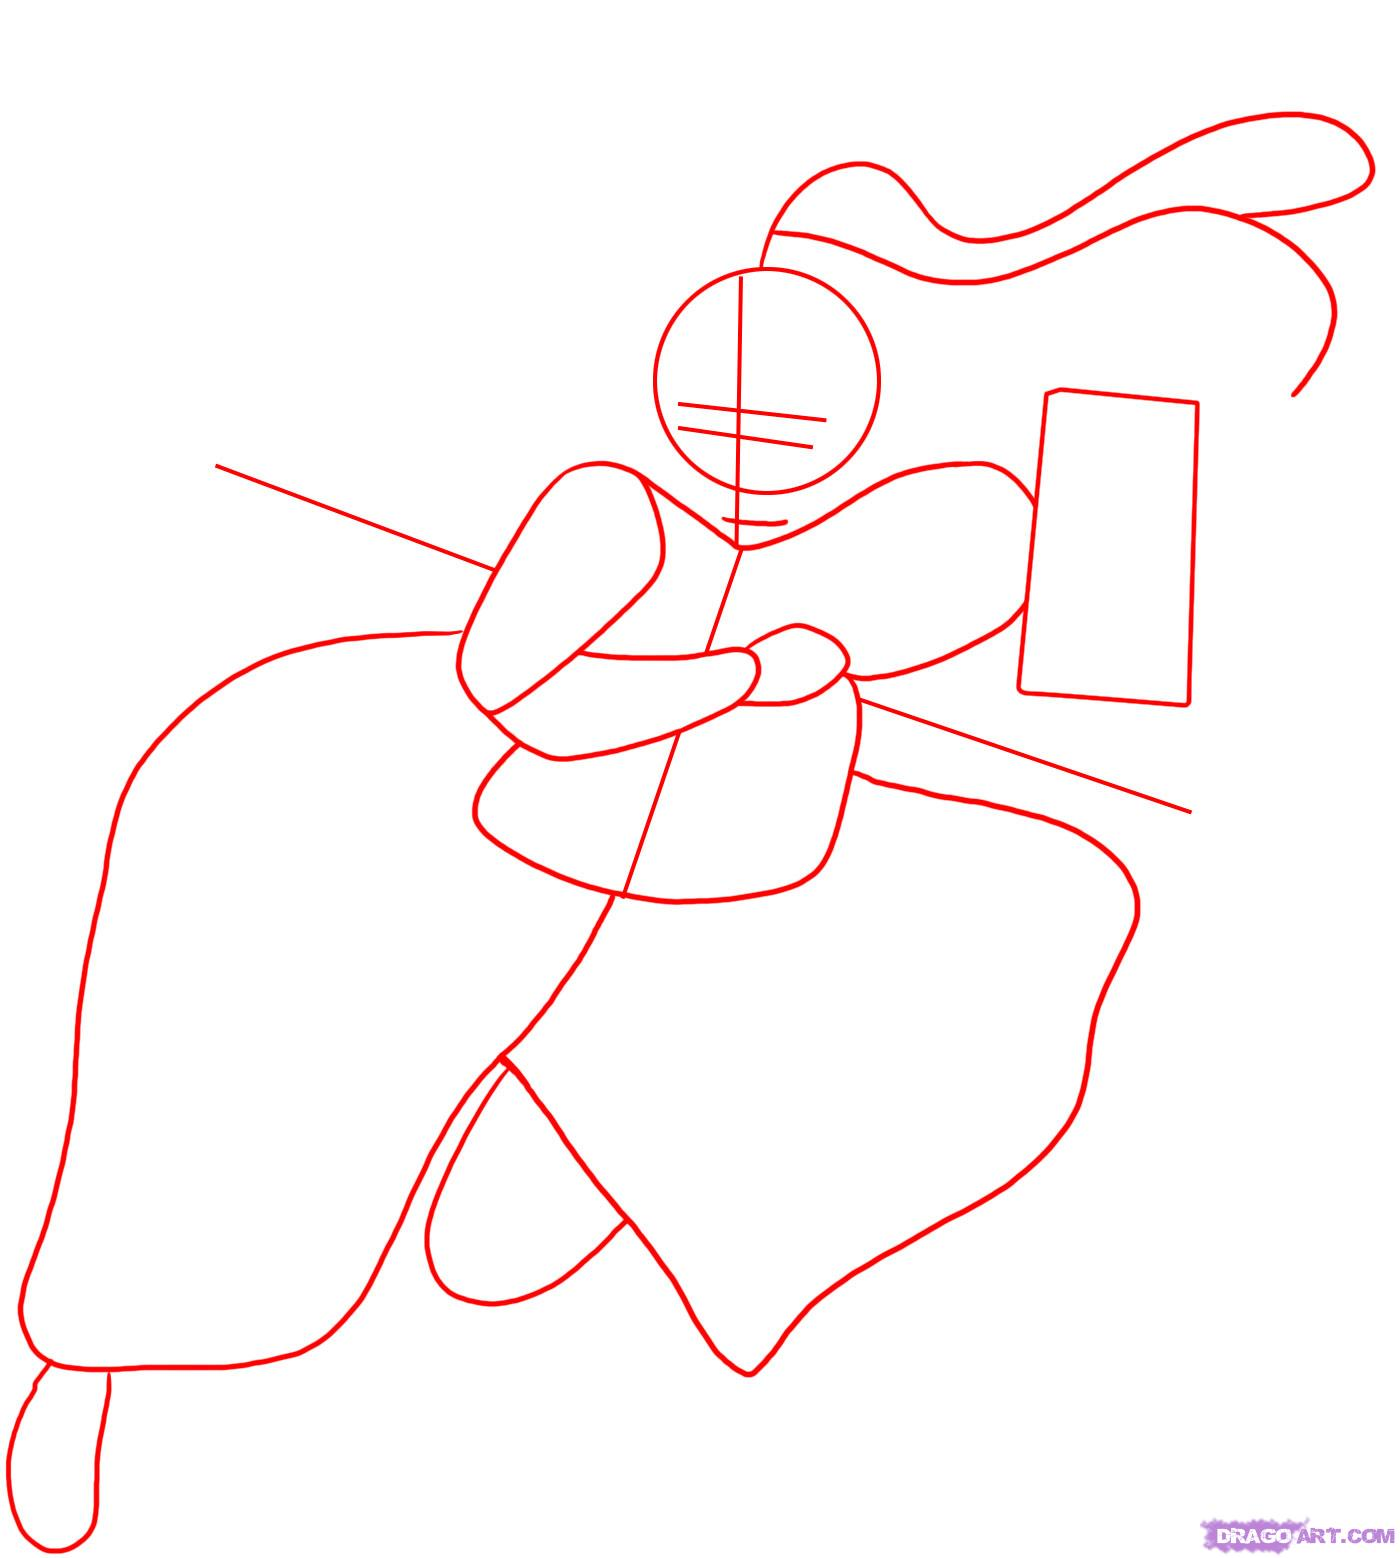 Drawn samurai japanese drawing Draw to a 1 a